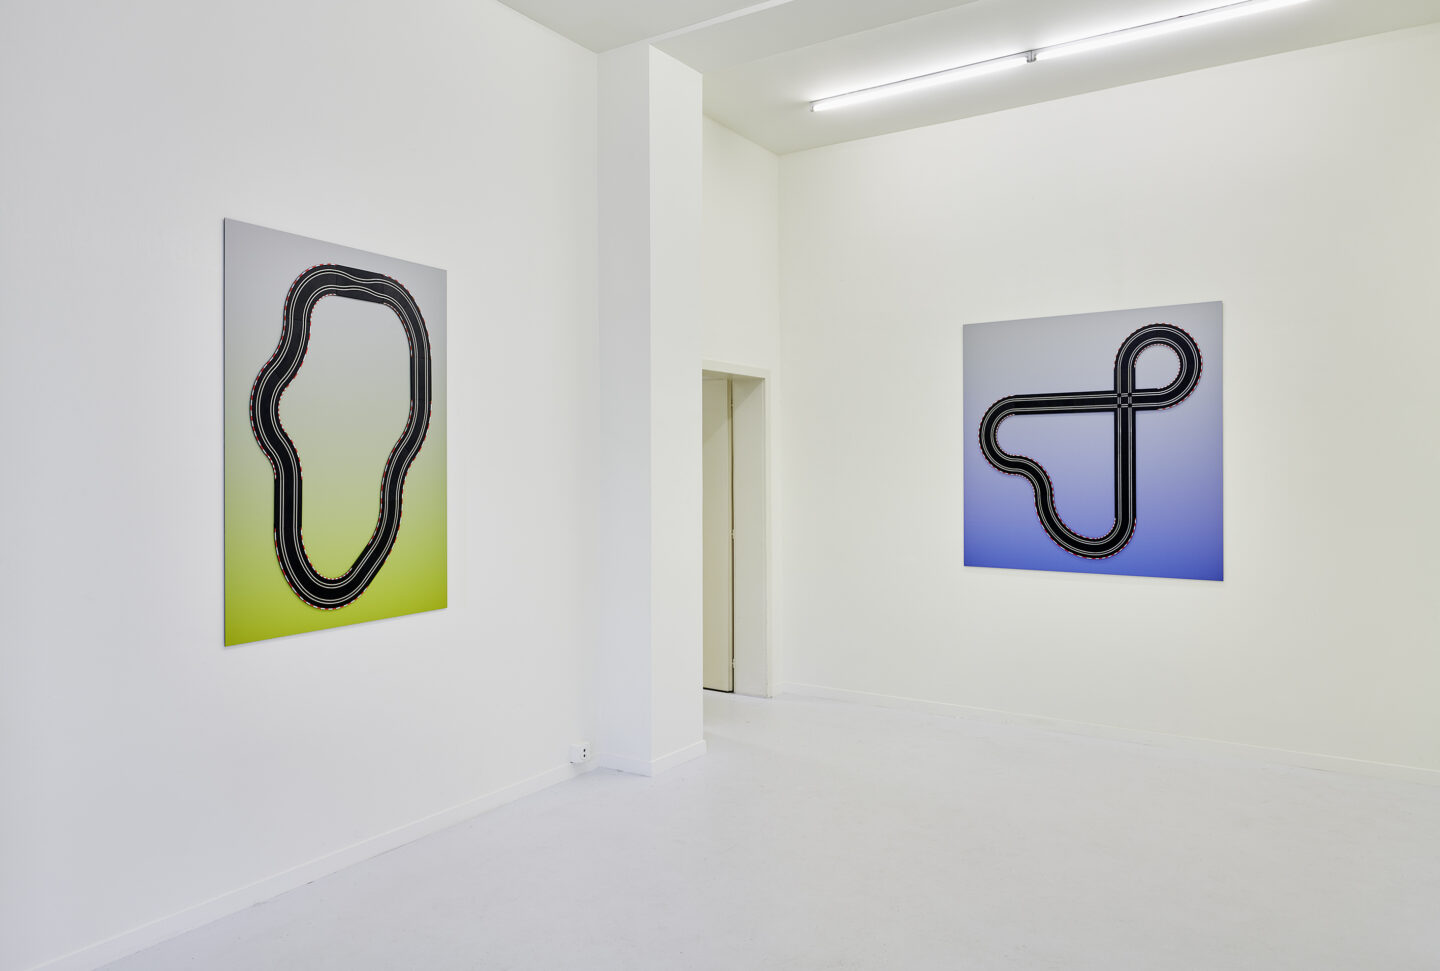 Exhibition View Malte Bartsch Soloshow «Bottom Up» at Lemoyne Project, Zurich, 2020 / Courtesy: the artist and Lemoyne Project